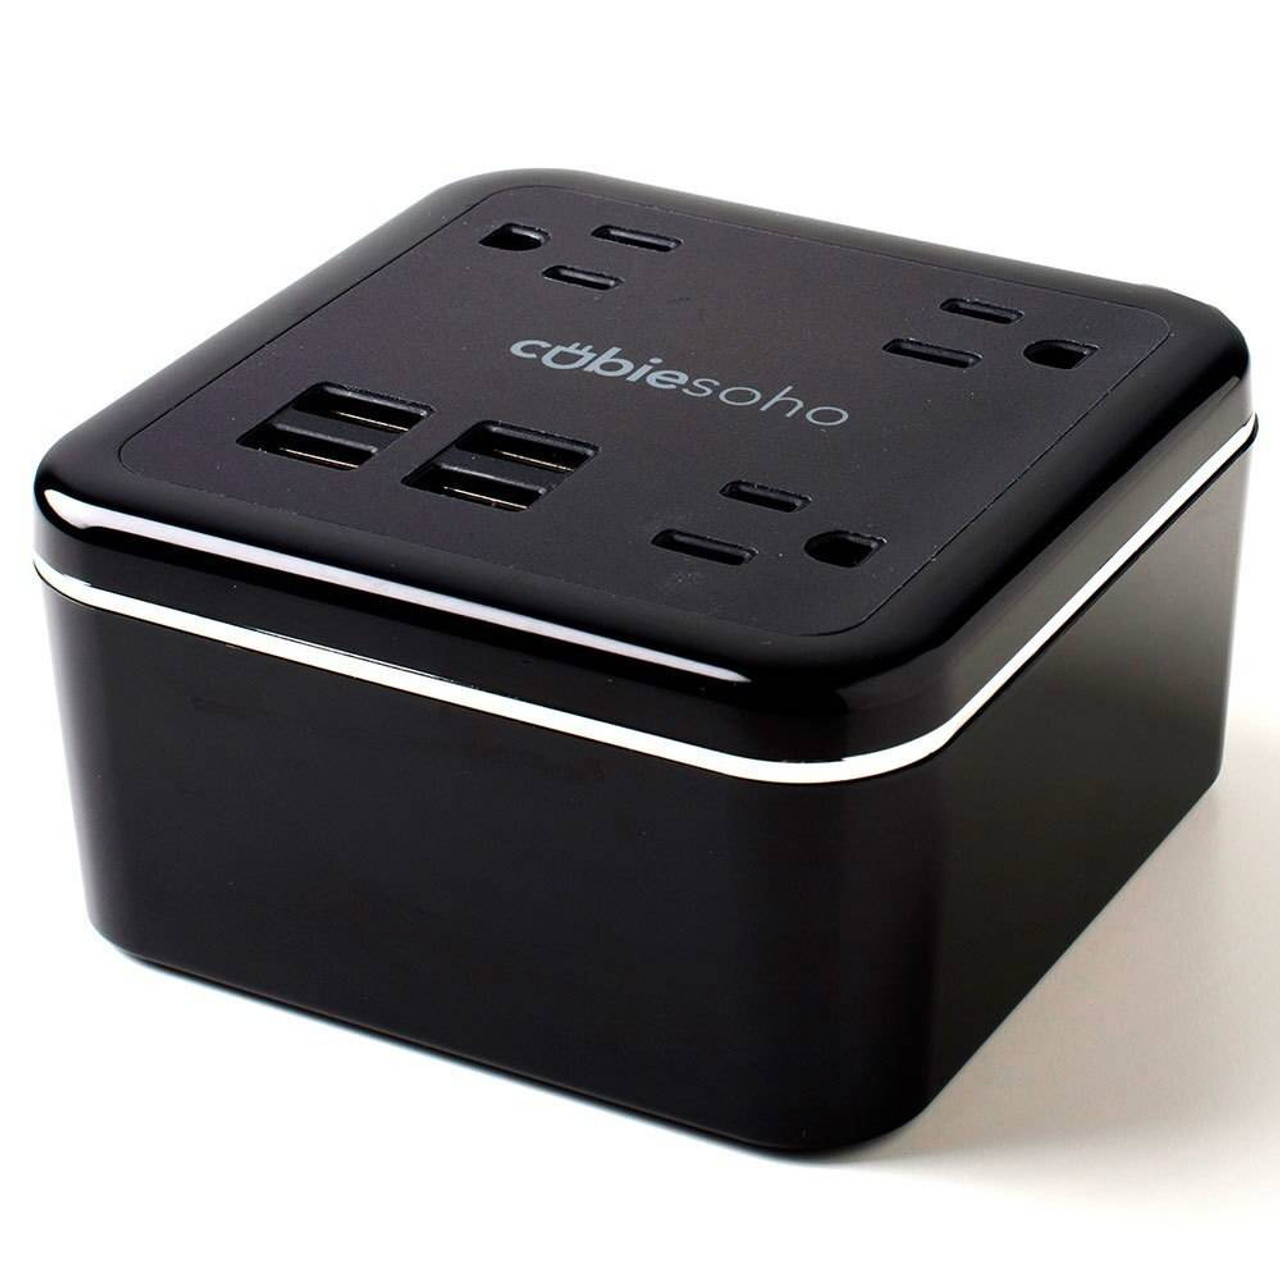 Brandstand BRANDSTAND CUBIESOHO 3 OUTLETS 4 USB CHARGING PORTS W/ PASS THROUGH PLUG